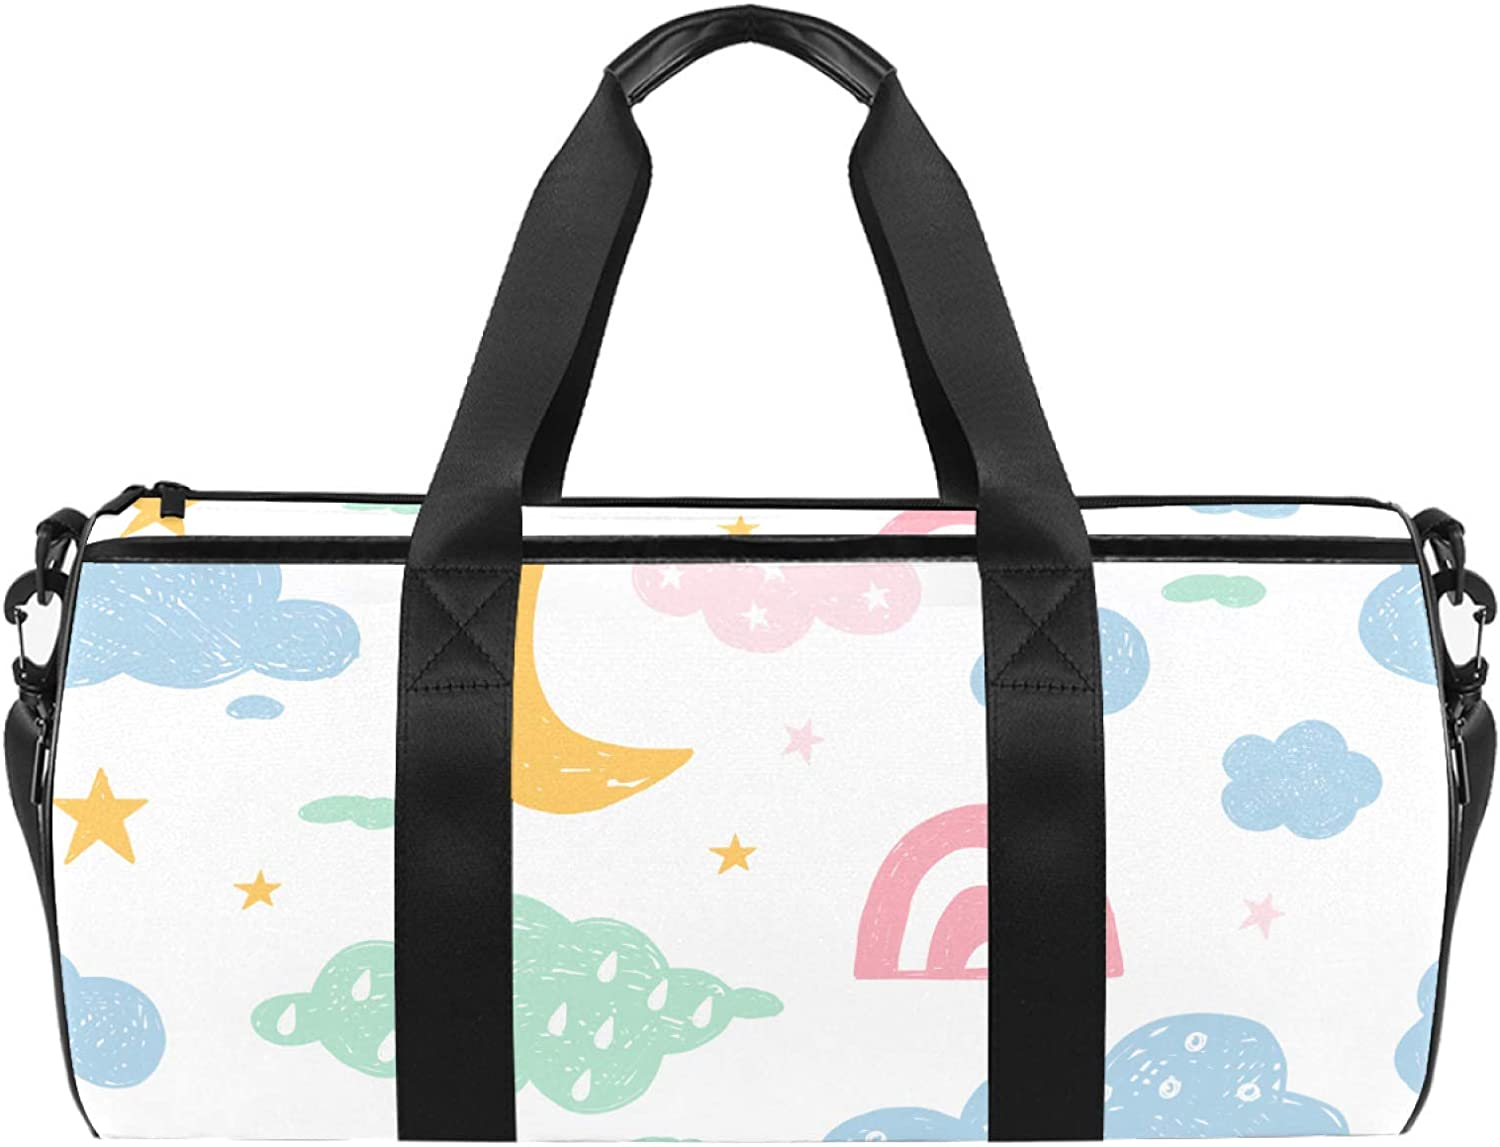 Sport Challenge the lowest price of Japan Duffel Bag Moon stars Be super welcome Travel Gym Weeke Kids clouds